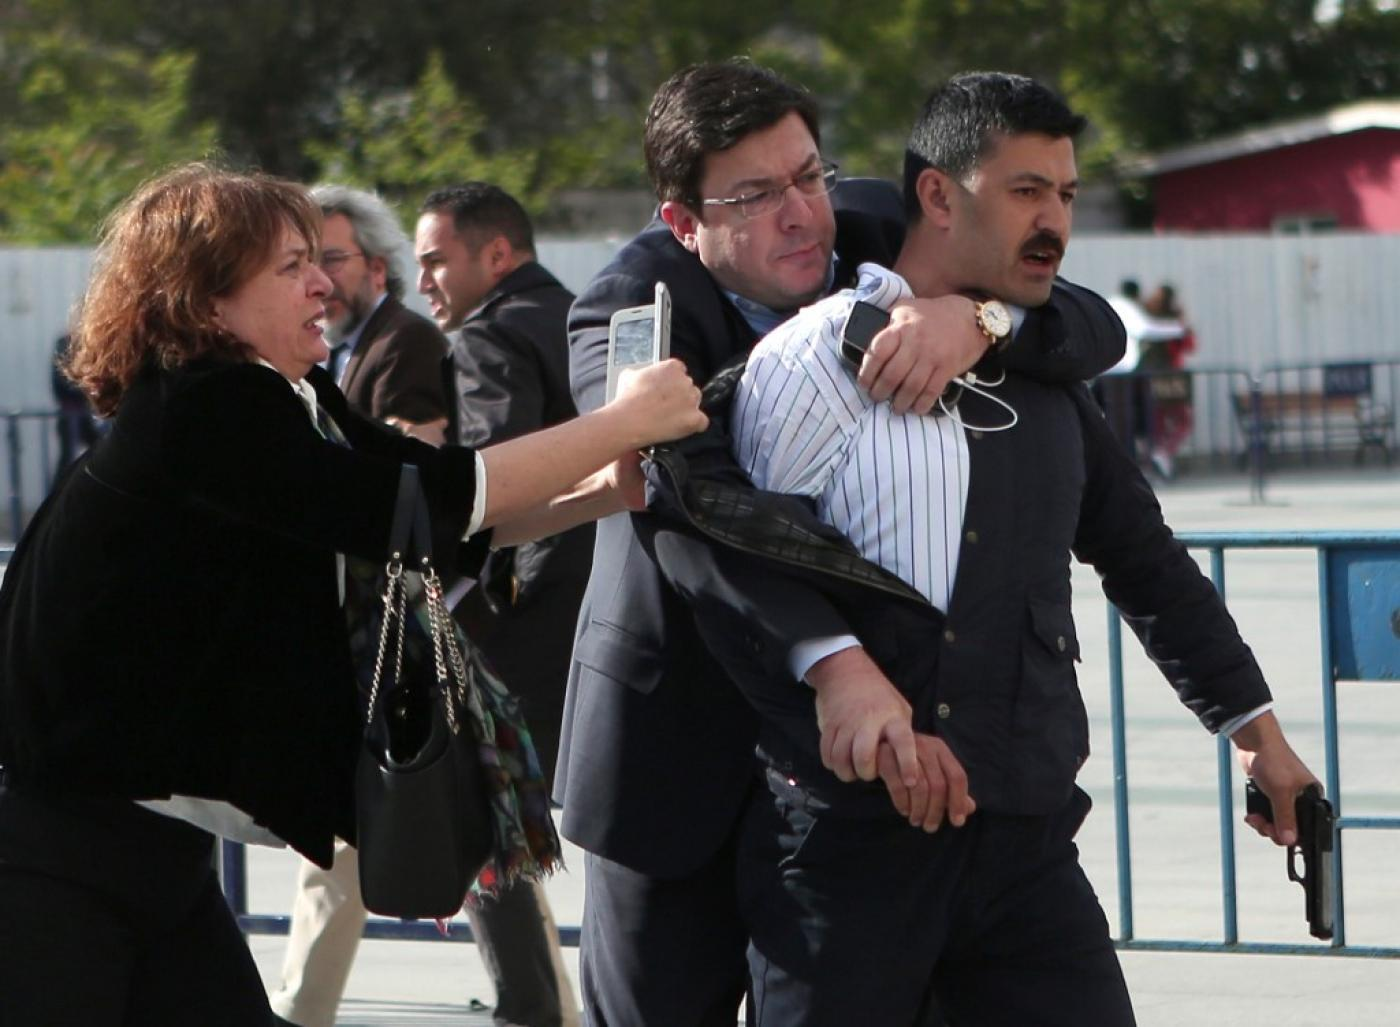 Dilek Dundar, the wife of Cumhuriyet editor in chief Can Dundar, trying to stop a gunman from firing shots outside a courthouse in Istanbul (Cumhuriyet/AFP)